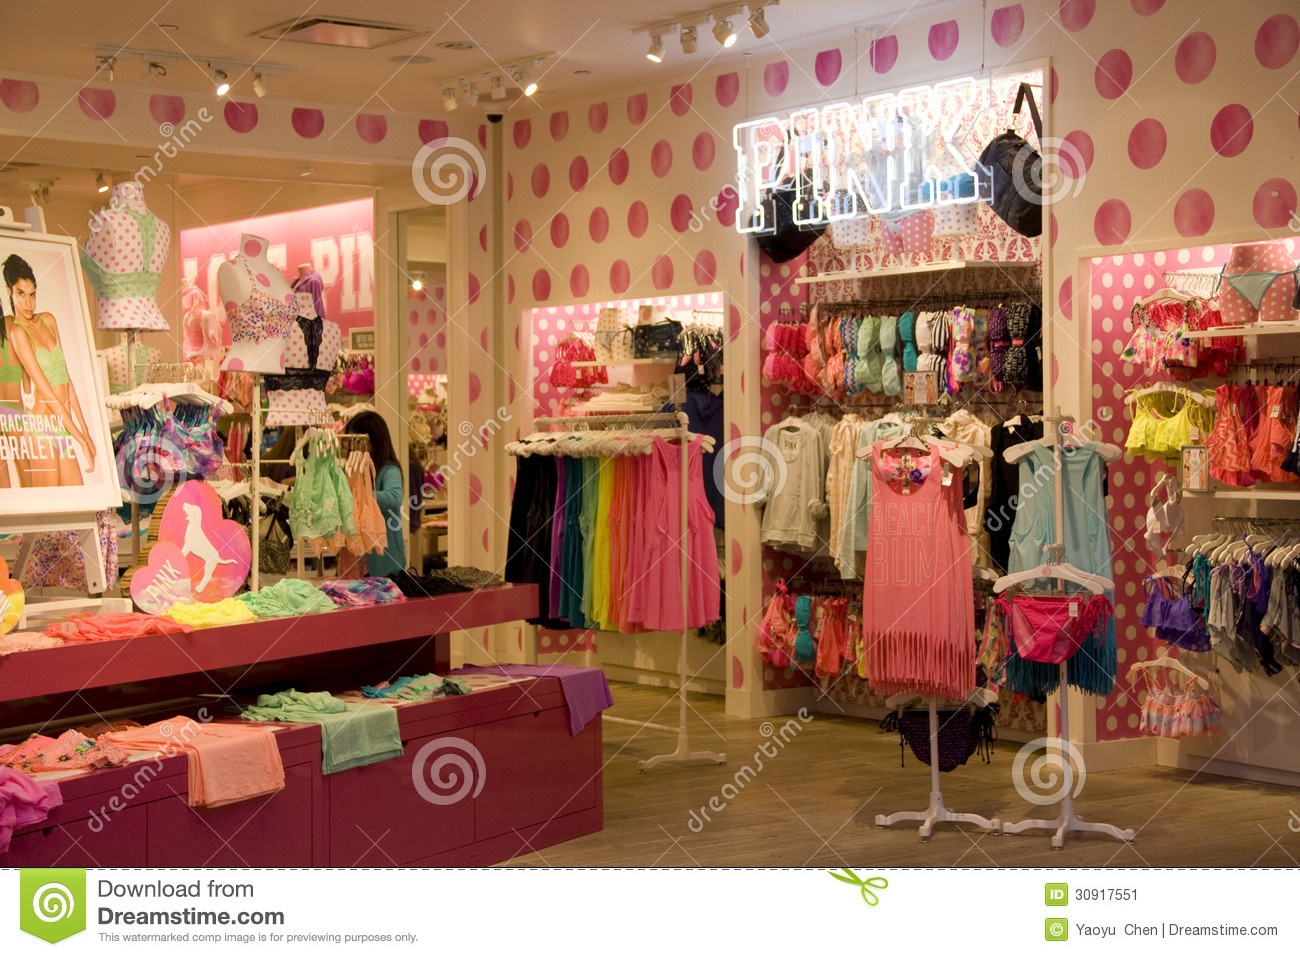 b2647211e27 Victoria Secret store with beautiful interiors in Bellevue Square Mall